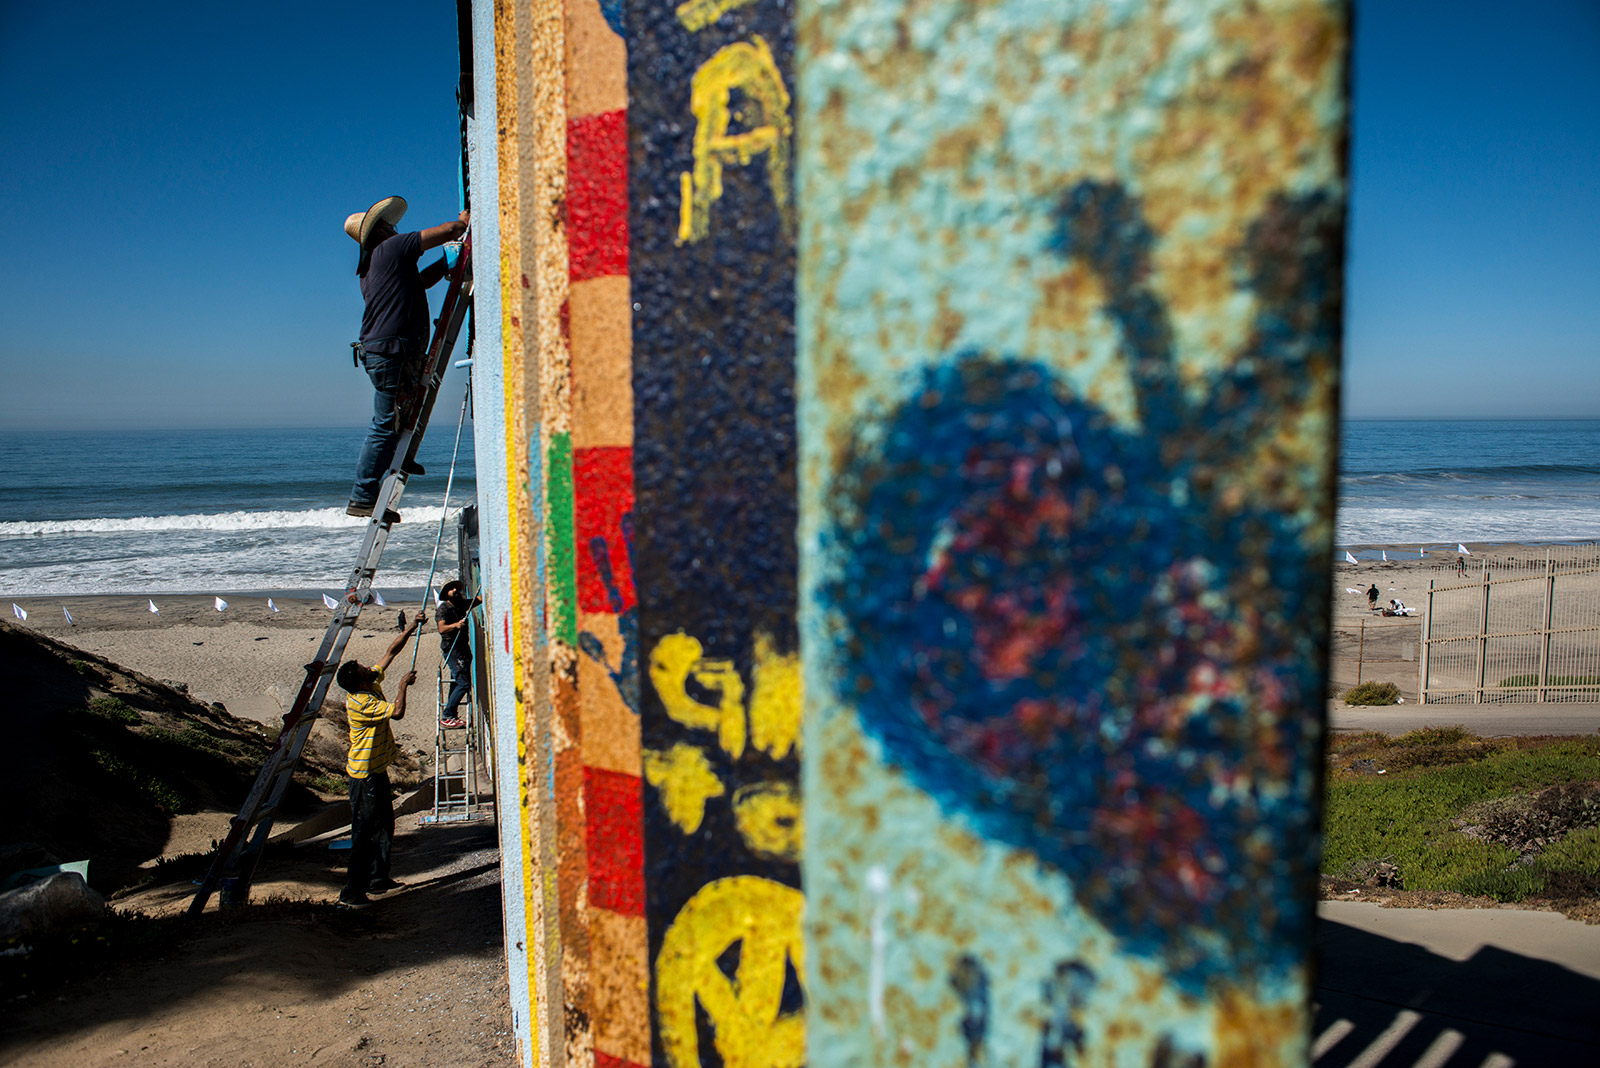 Separated by tall steel fencing, Enrique Chiu and two volunteers paint murals along the southern-facing section of fencing that separates the United States and Mexico on Oct. 7, 2017. This section, at Friendship Park in Tijuana, is the easternmost edge of the border that ends in the Pacific Ocean. <em>(Brandon Quester/inewsource)</em>